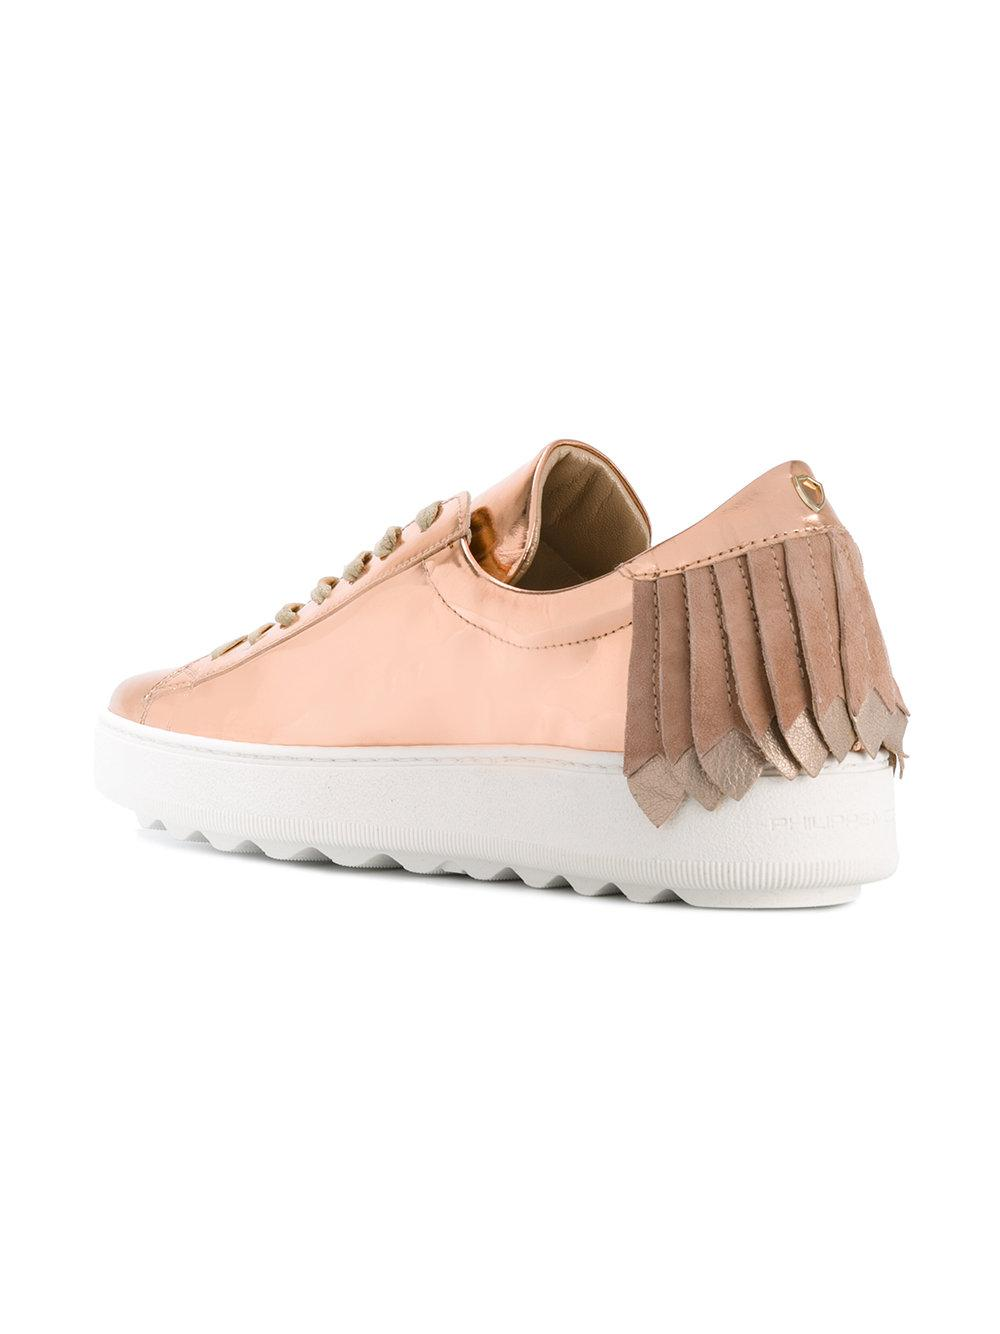 fringed sneakers - Pink & Purple Philippe Model rUxGr